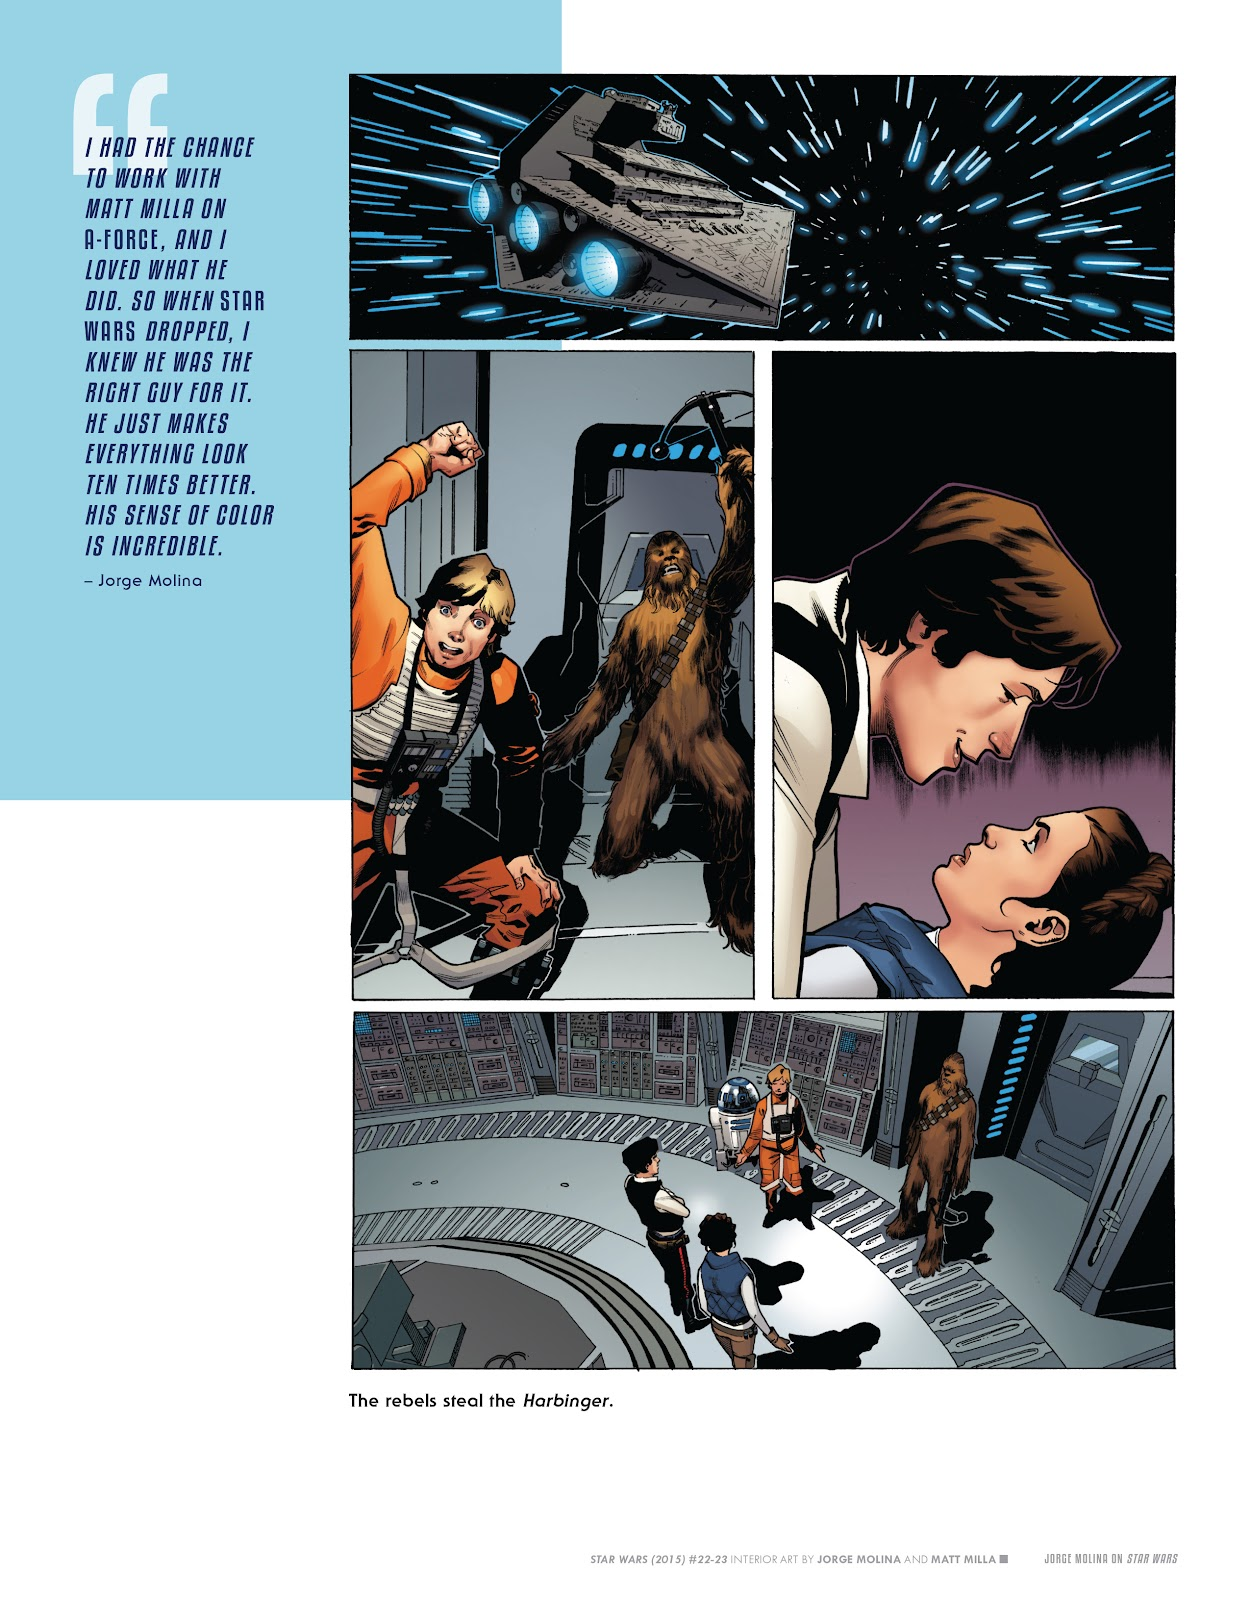 Read online The Marvel Art of Star Wars comic -  Issue # TPB (Part 2) - 4